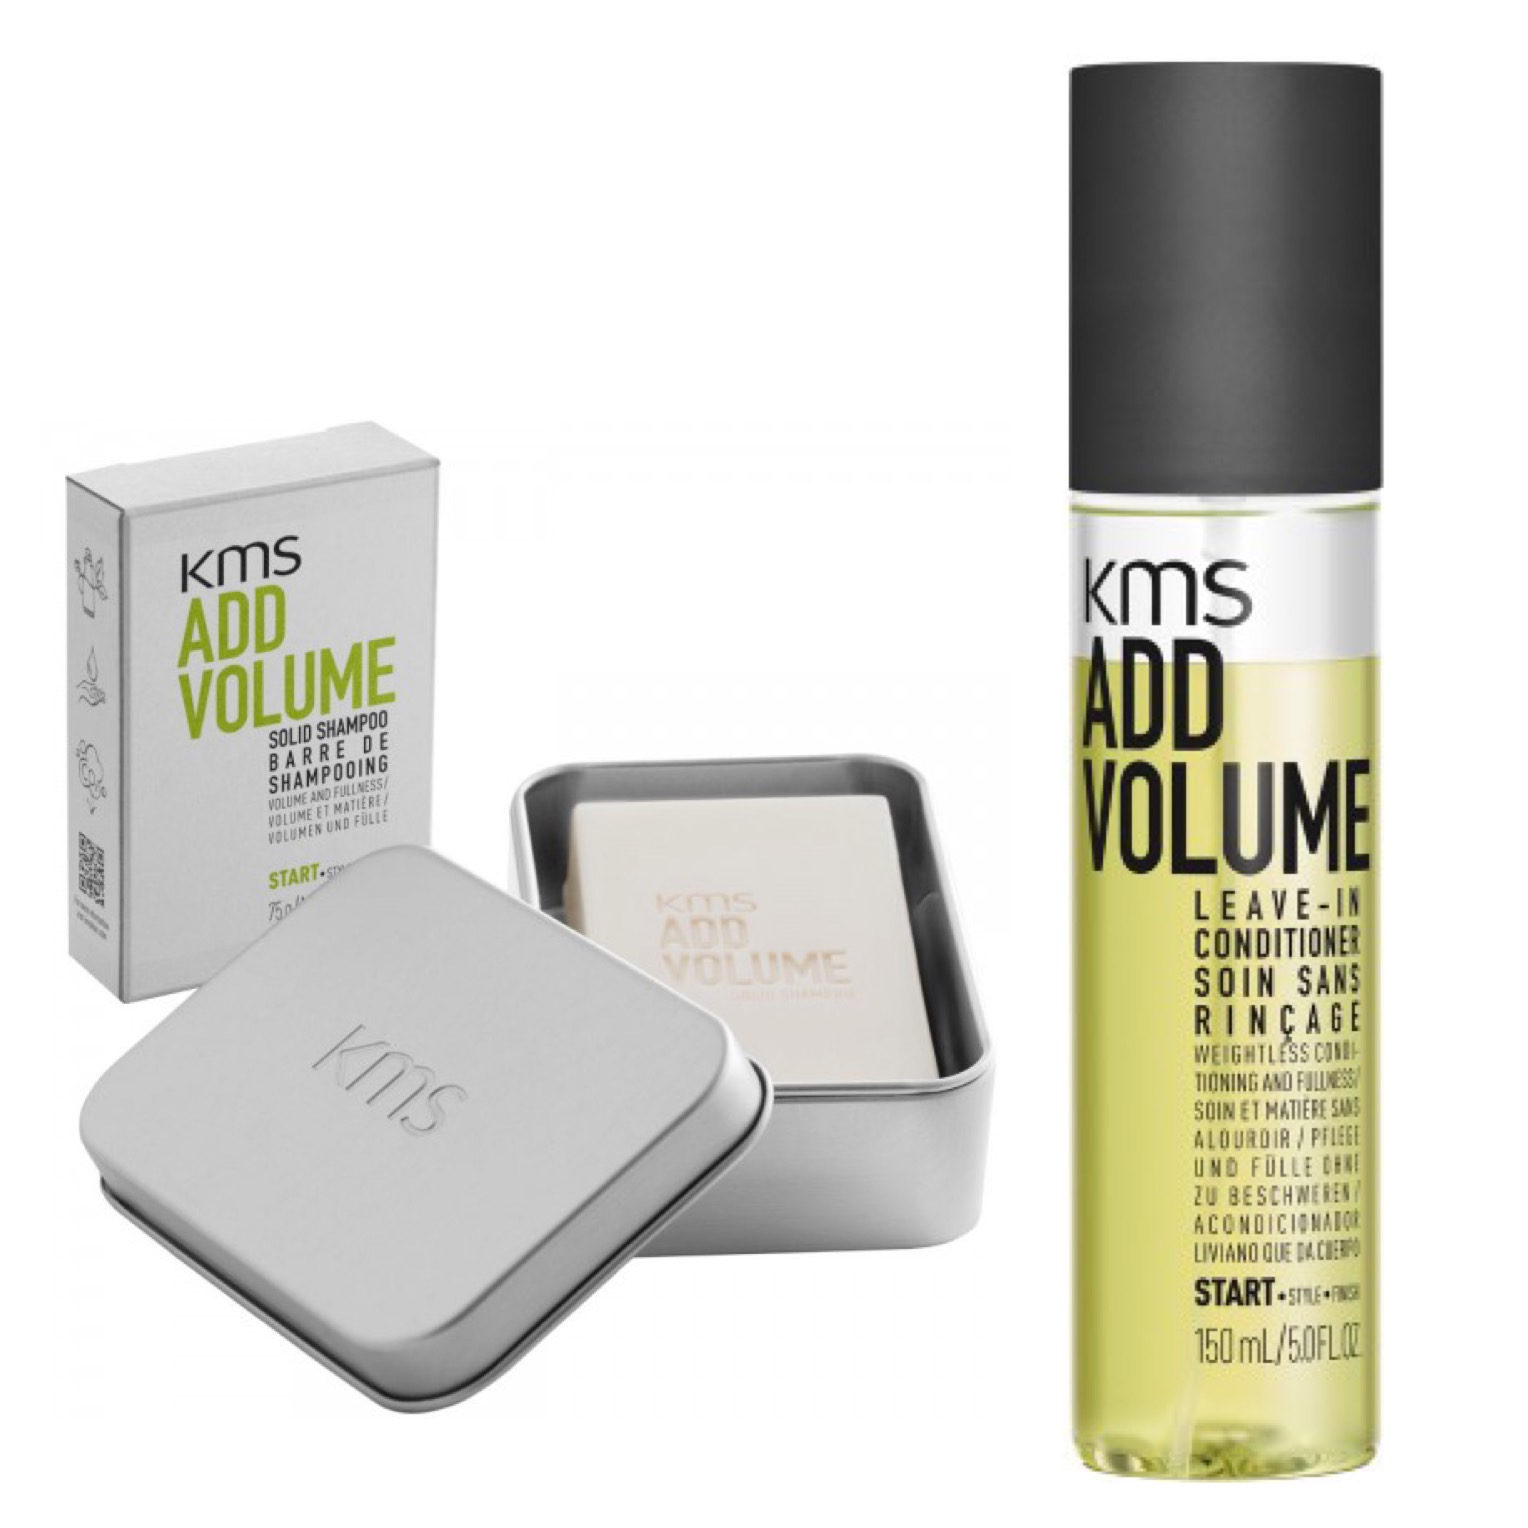 KMS California Addvolume Set - Solid Shampoo 75g + Keeper + Leave-In Conditioner 150ml